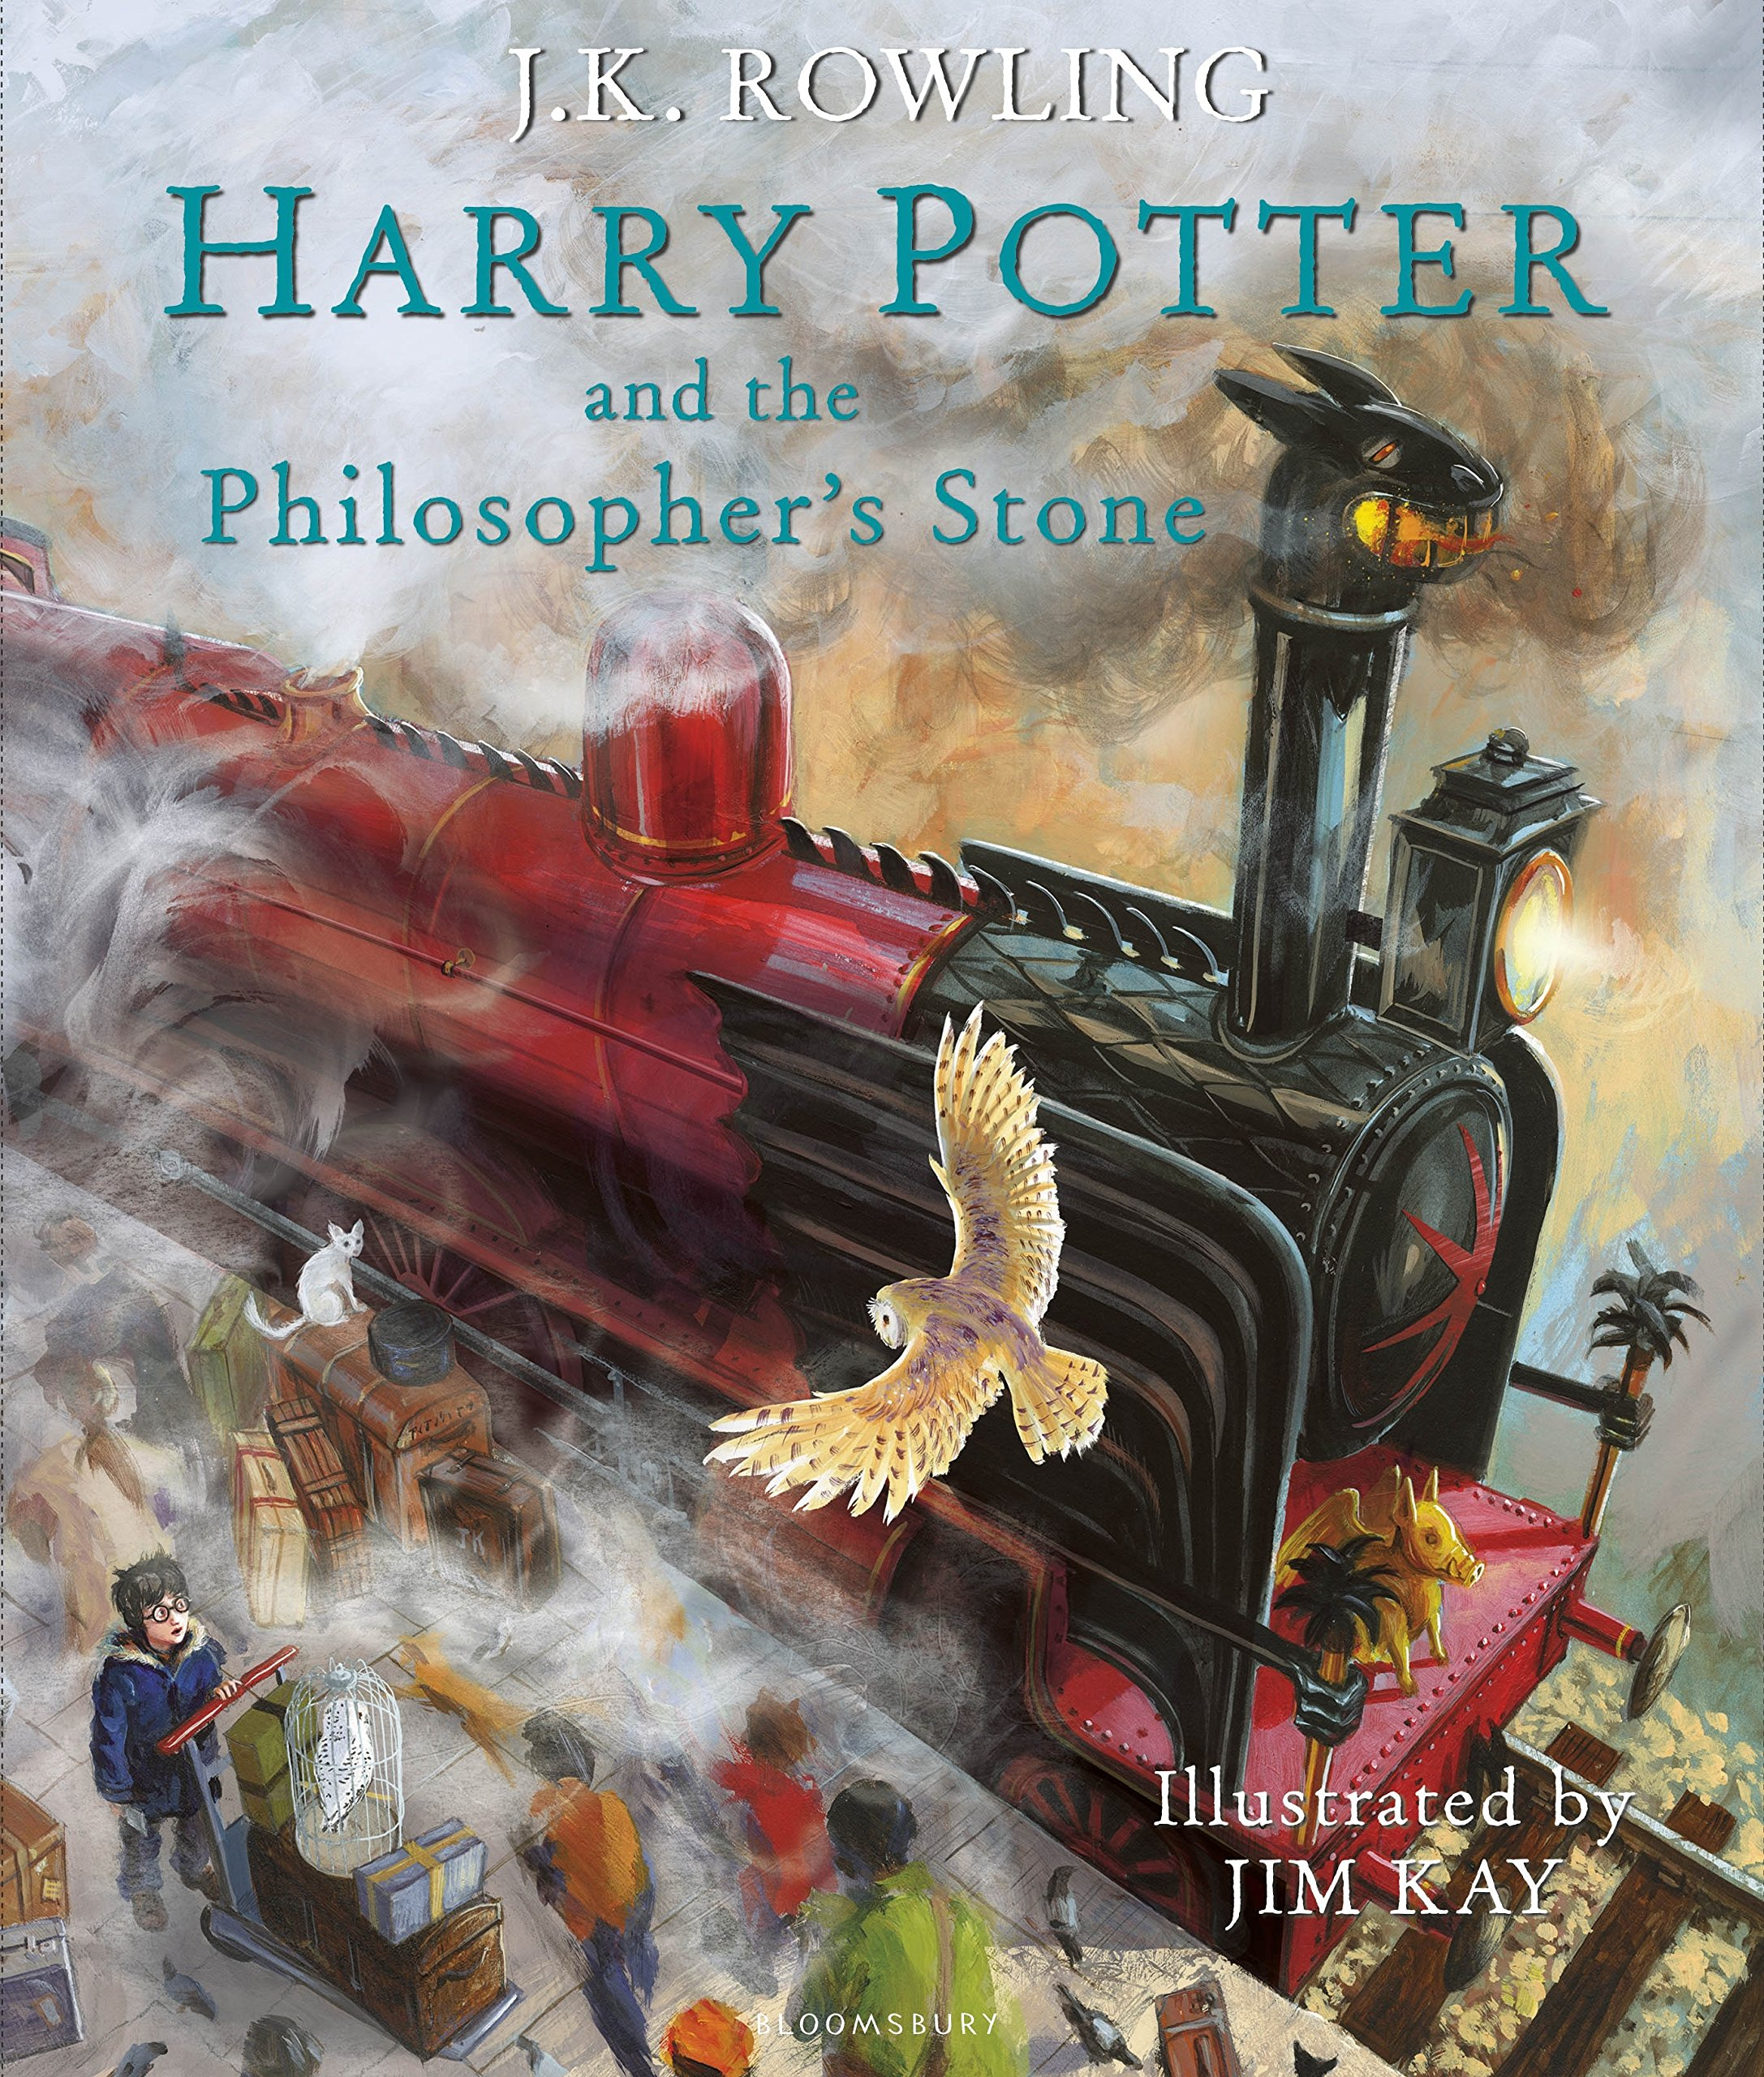 Harry Potter Sorcerers Stone Illustrated product image